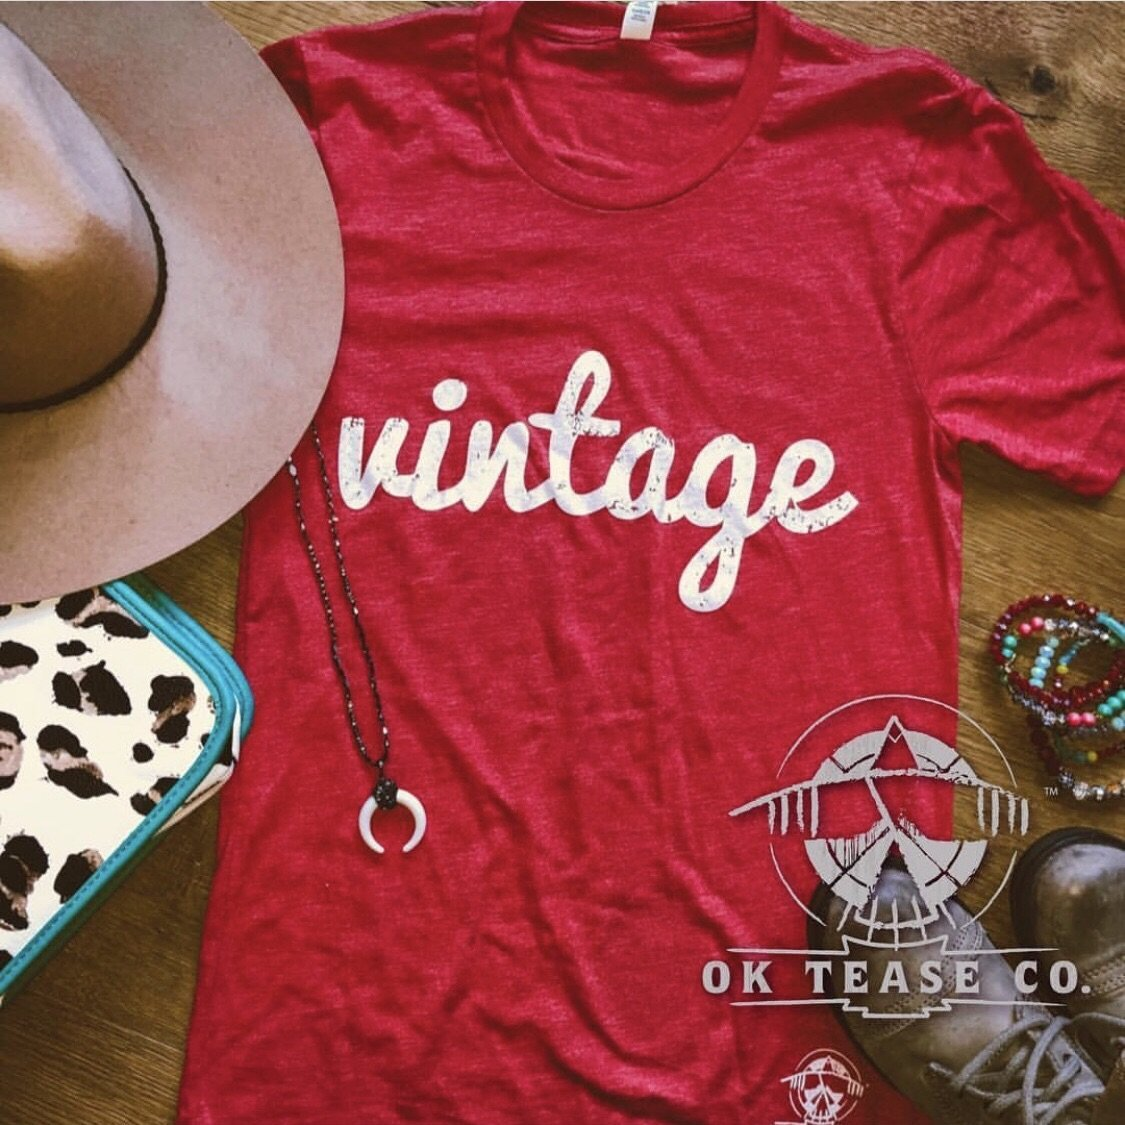 8f5fbf3a0e61 How To Make Your Tshirts Feel Vintage Soft Jillee One Good